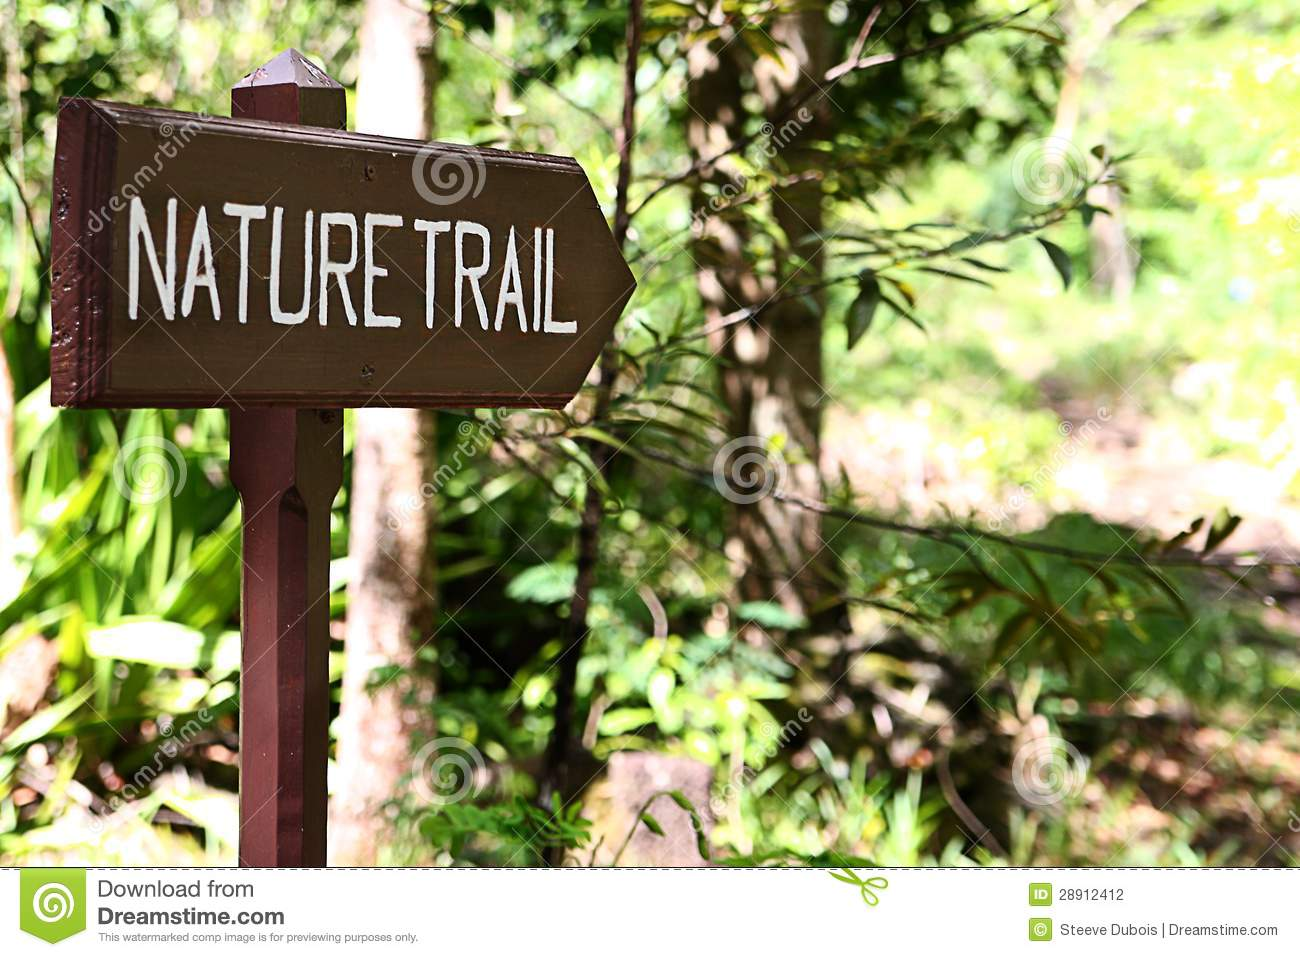 Nature trail clipart.